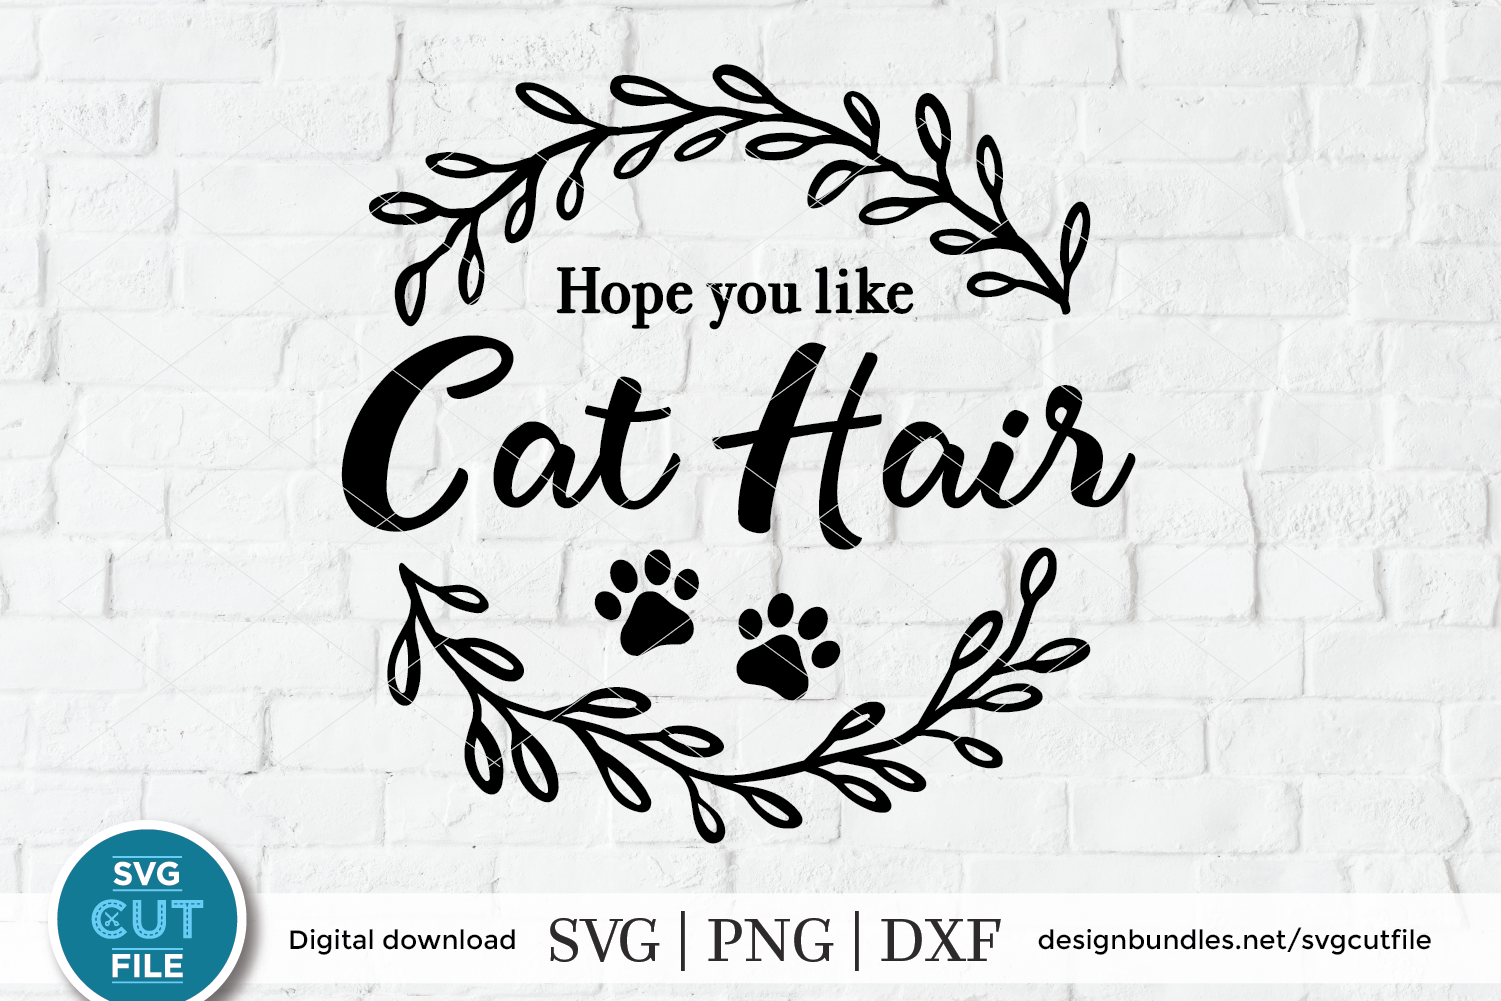 Hope you like Cat Hair Doormat SVG - Cats welcome door mat example image 1